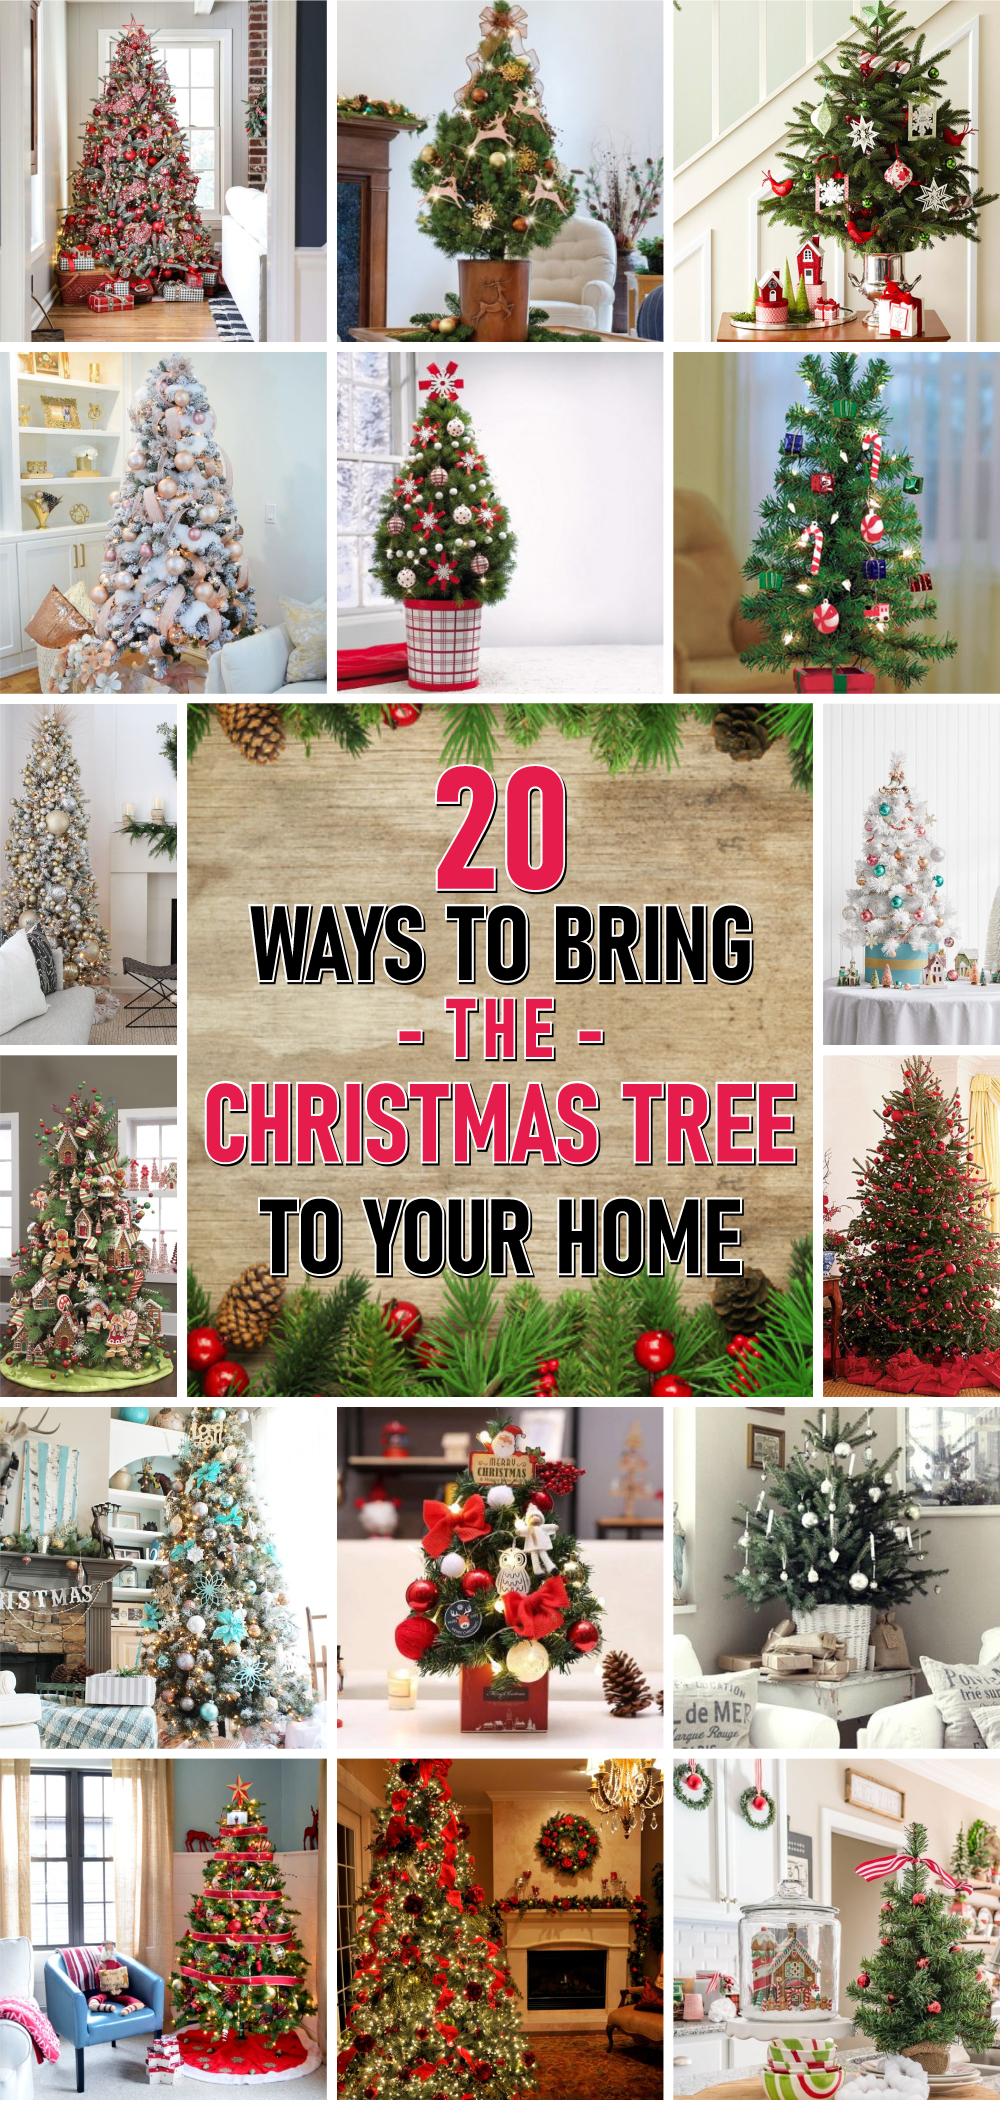 20 ways to bring the christmas tree to your home 1